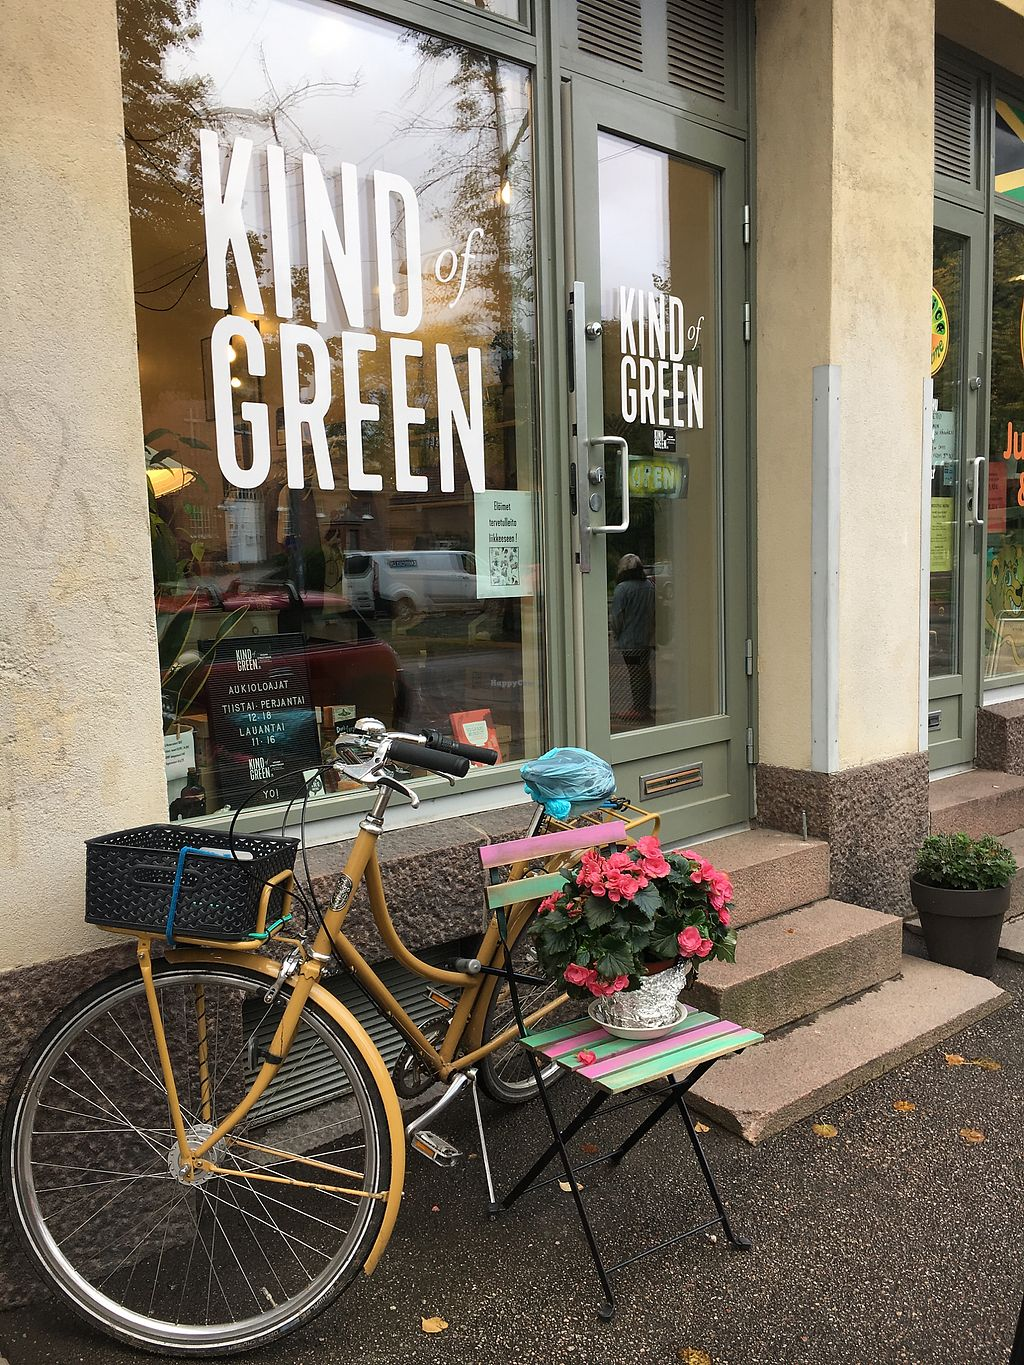 "Photo of Kind of Green  by <a href=""/members/profile/SeitanSeitanSeitan"">SeitanSeitanSeitan</a> <br/>Kind of green store front <br/> November 2, 2017  - <a href='/contact/abuse/image/96209/321145'>Report</a>"